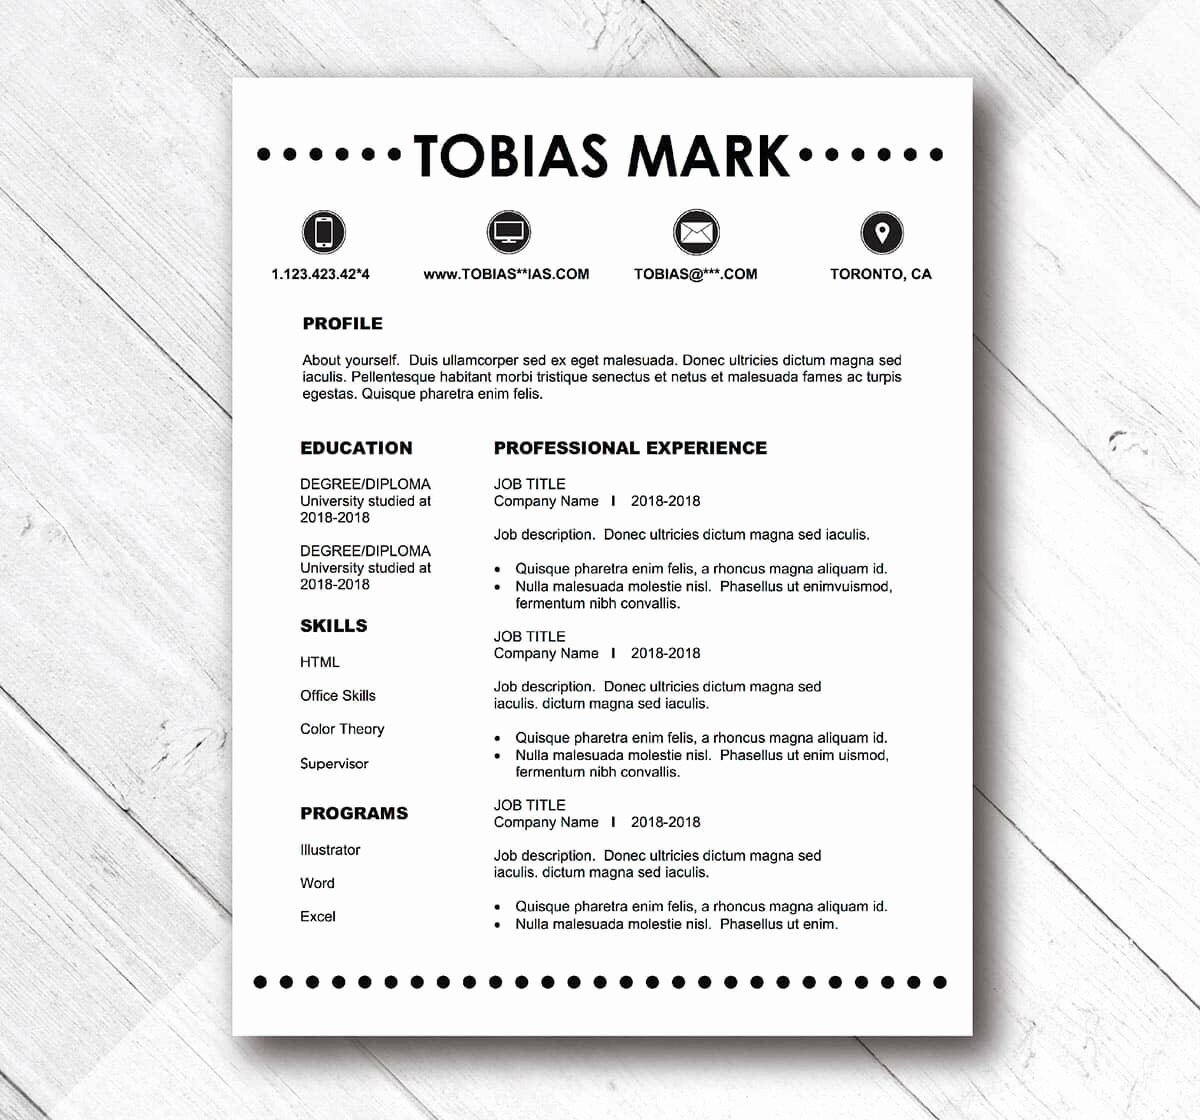 Easy P&l Template Luxury Simple Resume Templates 15 Examples to Download & Use now